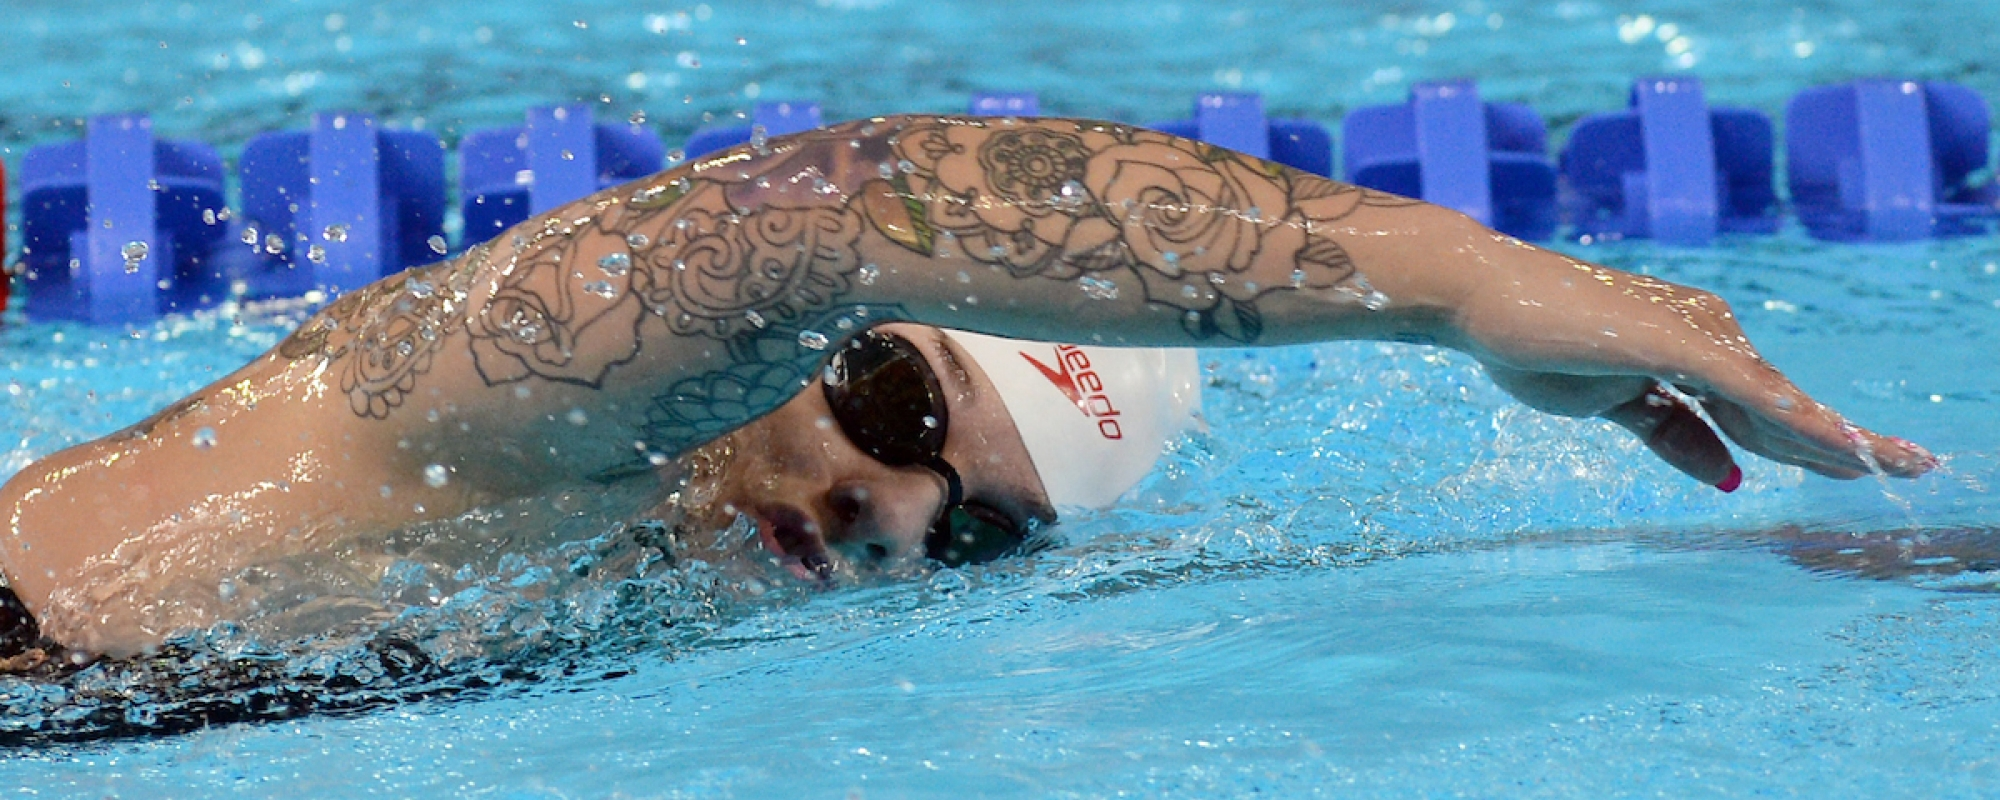 Krystal Shaw swims at the Lima 2019 Parapan American Games